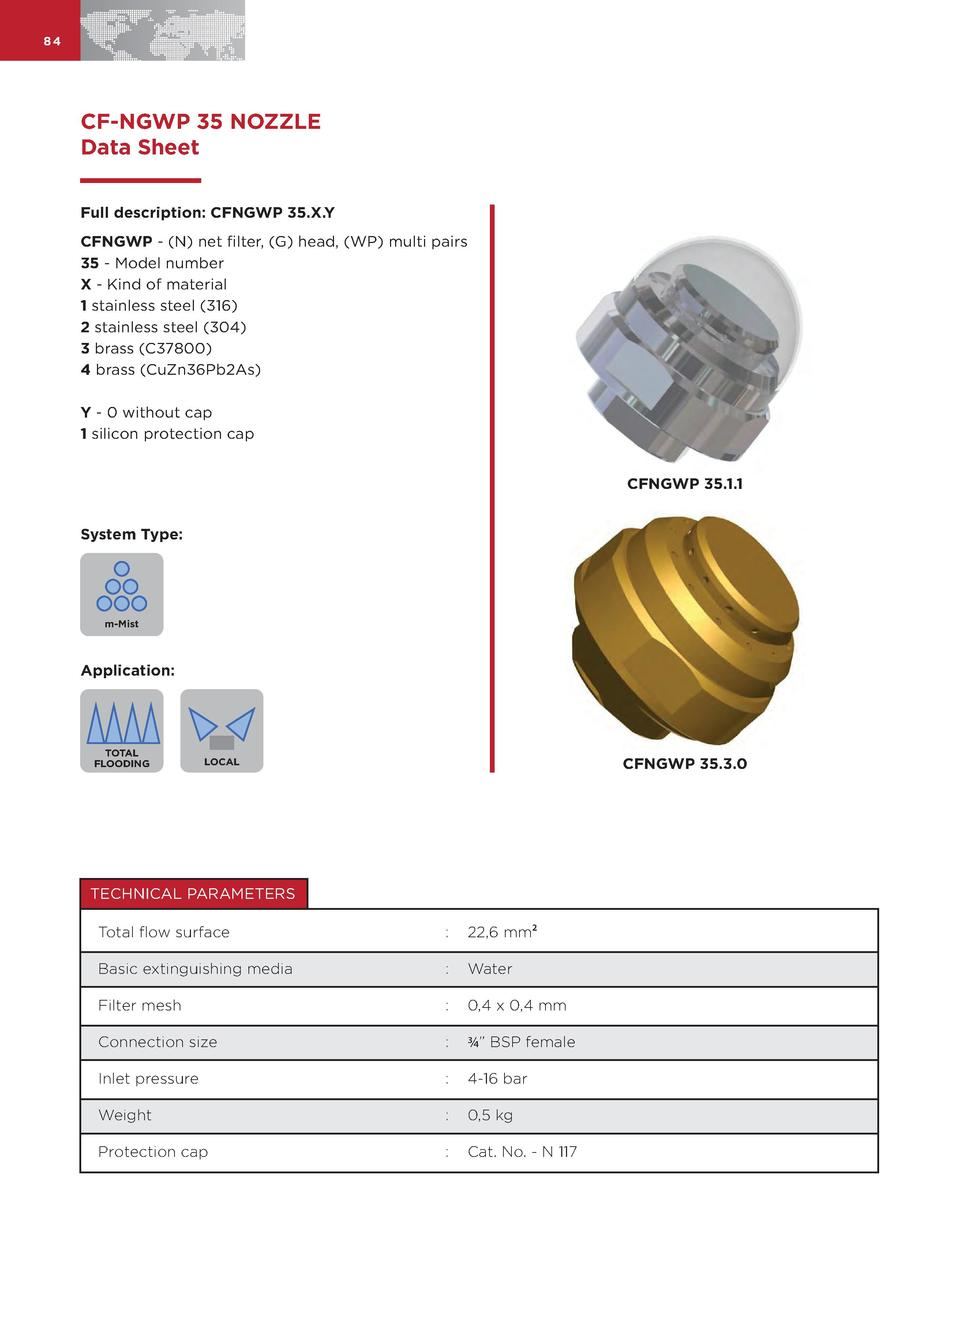 84  CF-NGWP 35 NOZZLE Data Sheet Full description  CFNGWP 35.X.Y CFNGWP -  N  net filter,  G  head,  WP  multi pairs 35 - ...